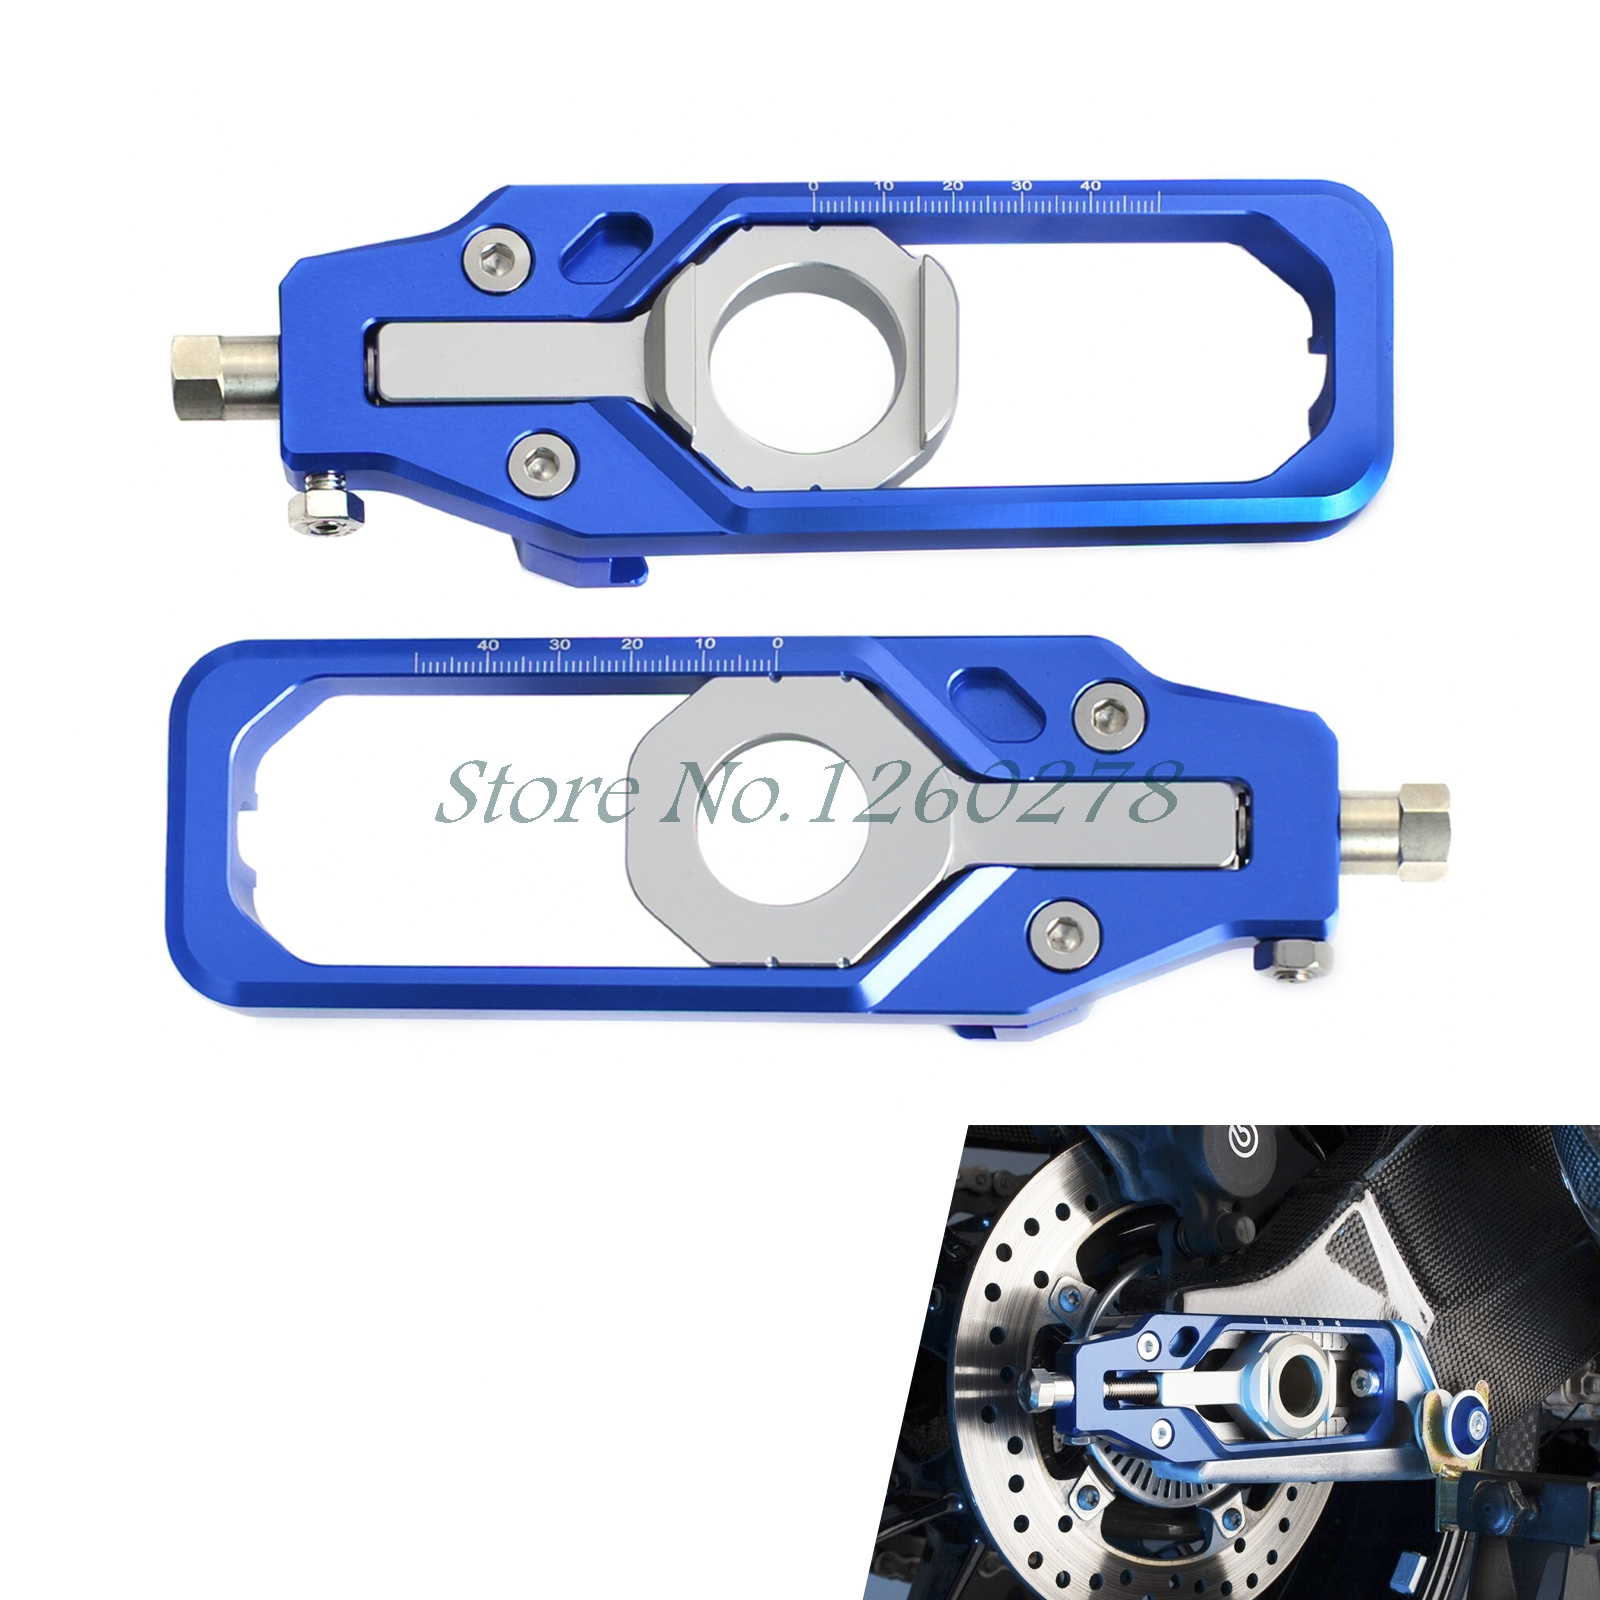 Motorcycle Chain Adjuster Tensioners For BMW S1000RR 2009-2017 S1000R 2013-2017 HP4 2013 2014 ca bm001 bk new motorcycle cnc billet rear axle spindle chain adjuster blocks for bmw hp4 2012 2014 s1000r 2013 2015 s1000rr 09